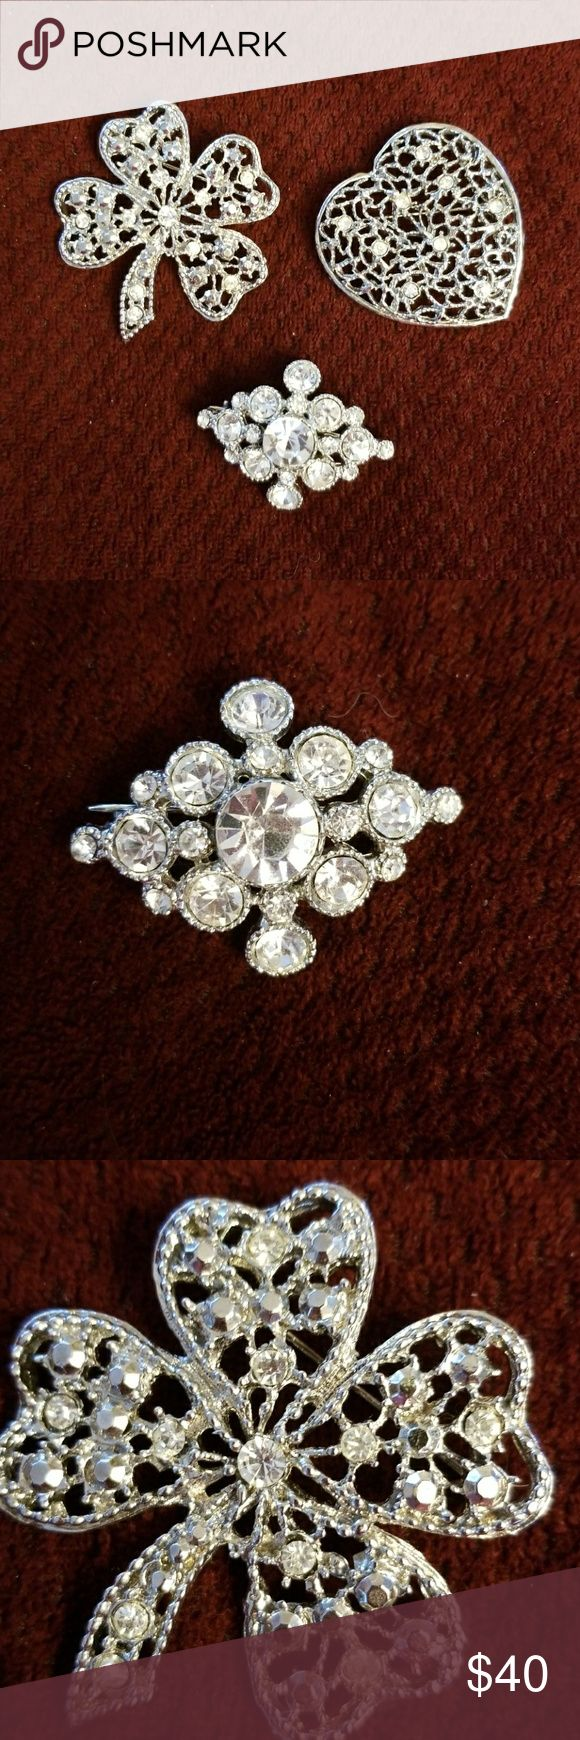 Bling  broochez😉💎 Set of 3 silver plated Crystal encrusted pins circa 1960s. Excellent condition !  Worn all together  for glam in the am or pm! Dresses